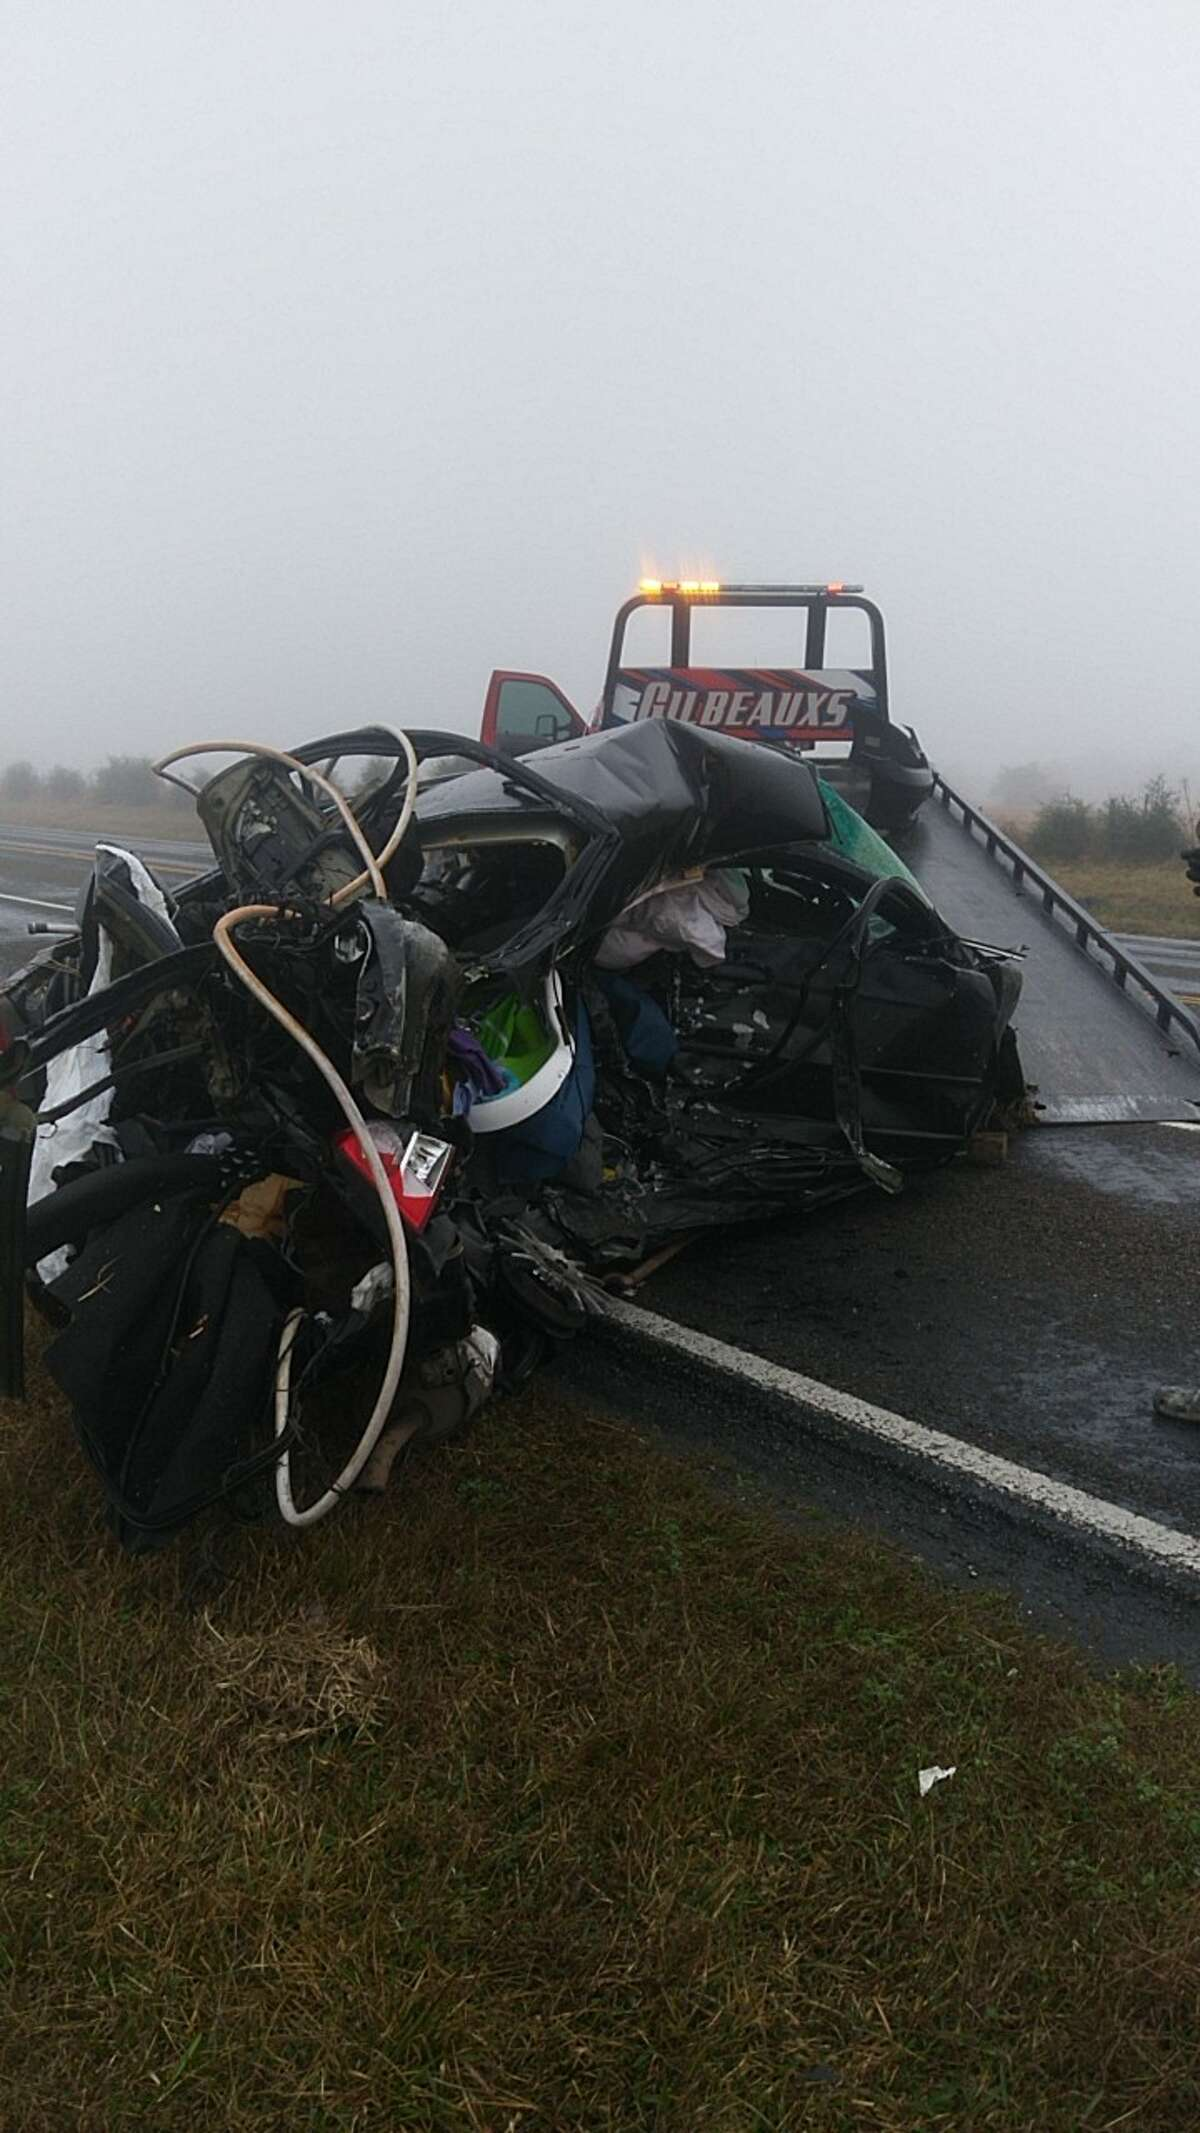 An 18-year-old from Woodville died Tuesday, Feb. 18, 2020 in an Orange County wreck. Photo provided by Eric Williams